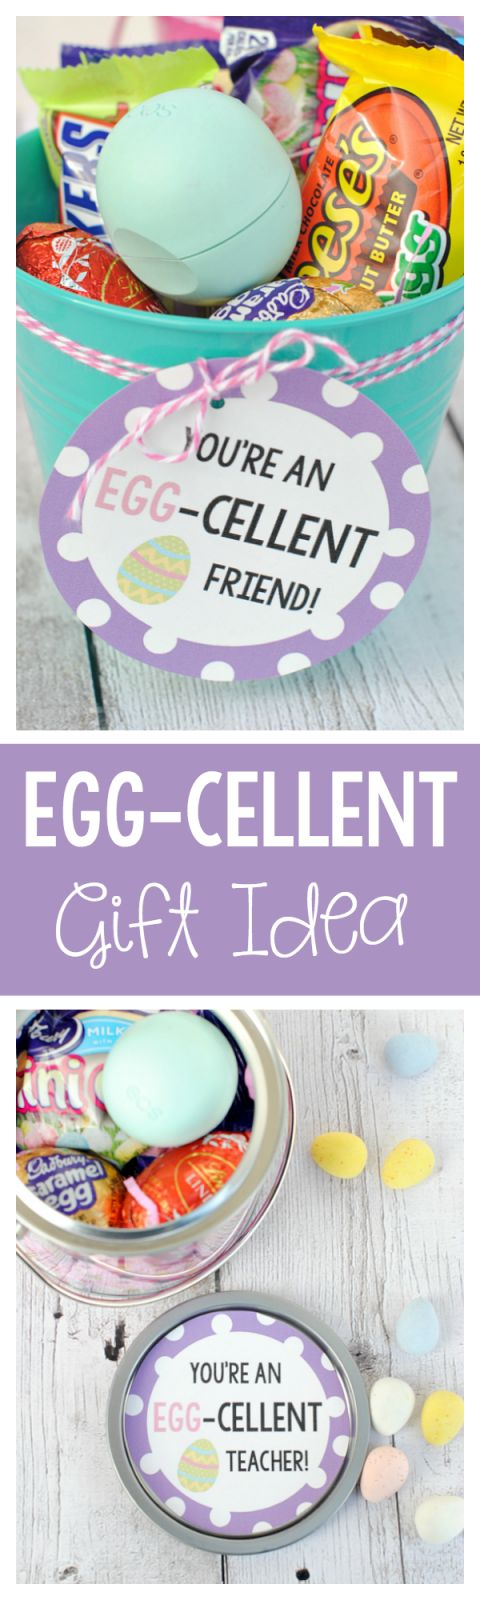 215 best easter gift ideas images on pinterest easter easter cute easter gift ideas egg cellent gift basket negle Image collections